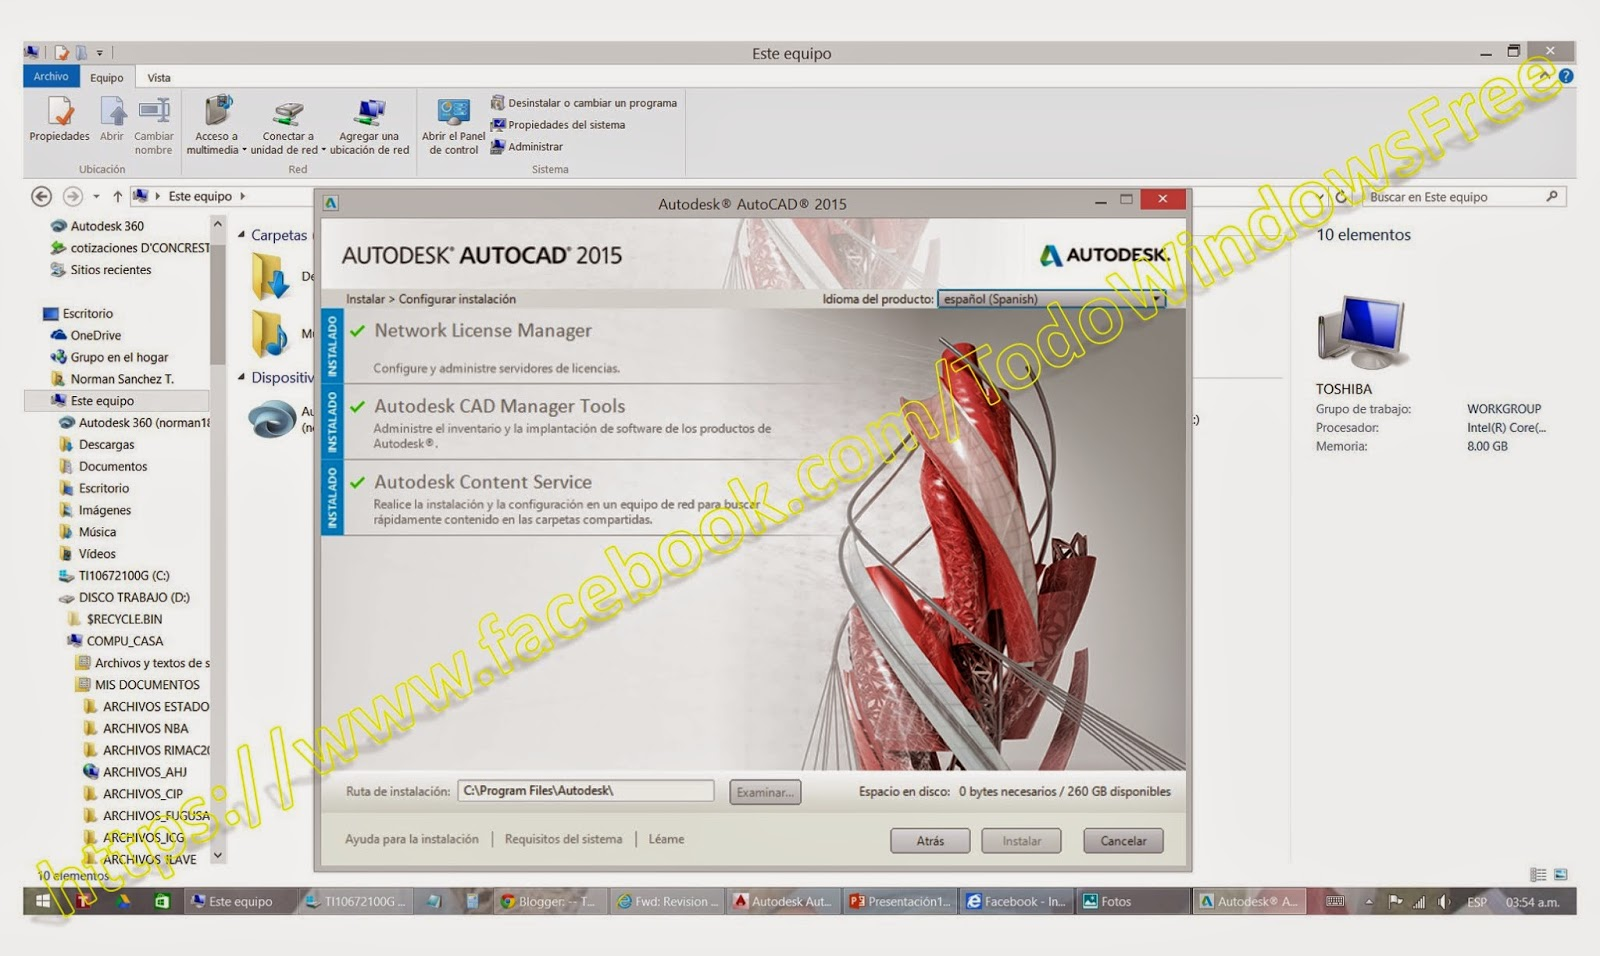 free download autocad 2010 full version with crack 64 bit